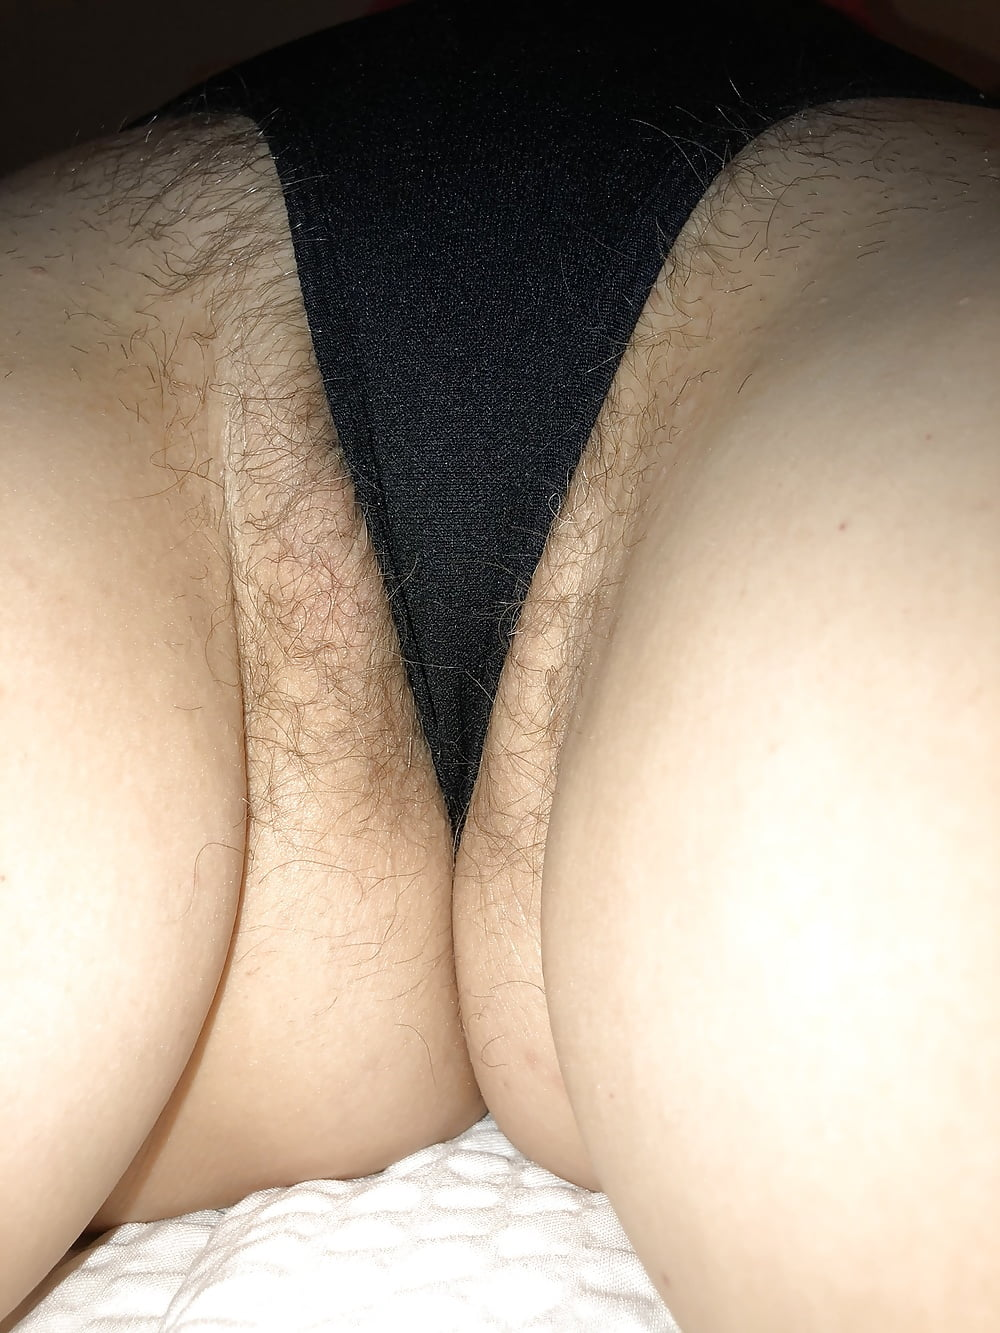 My ass and pussy loves bbc